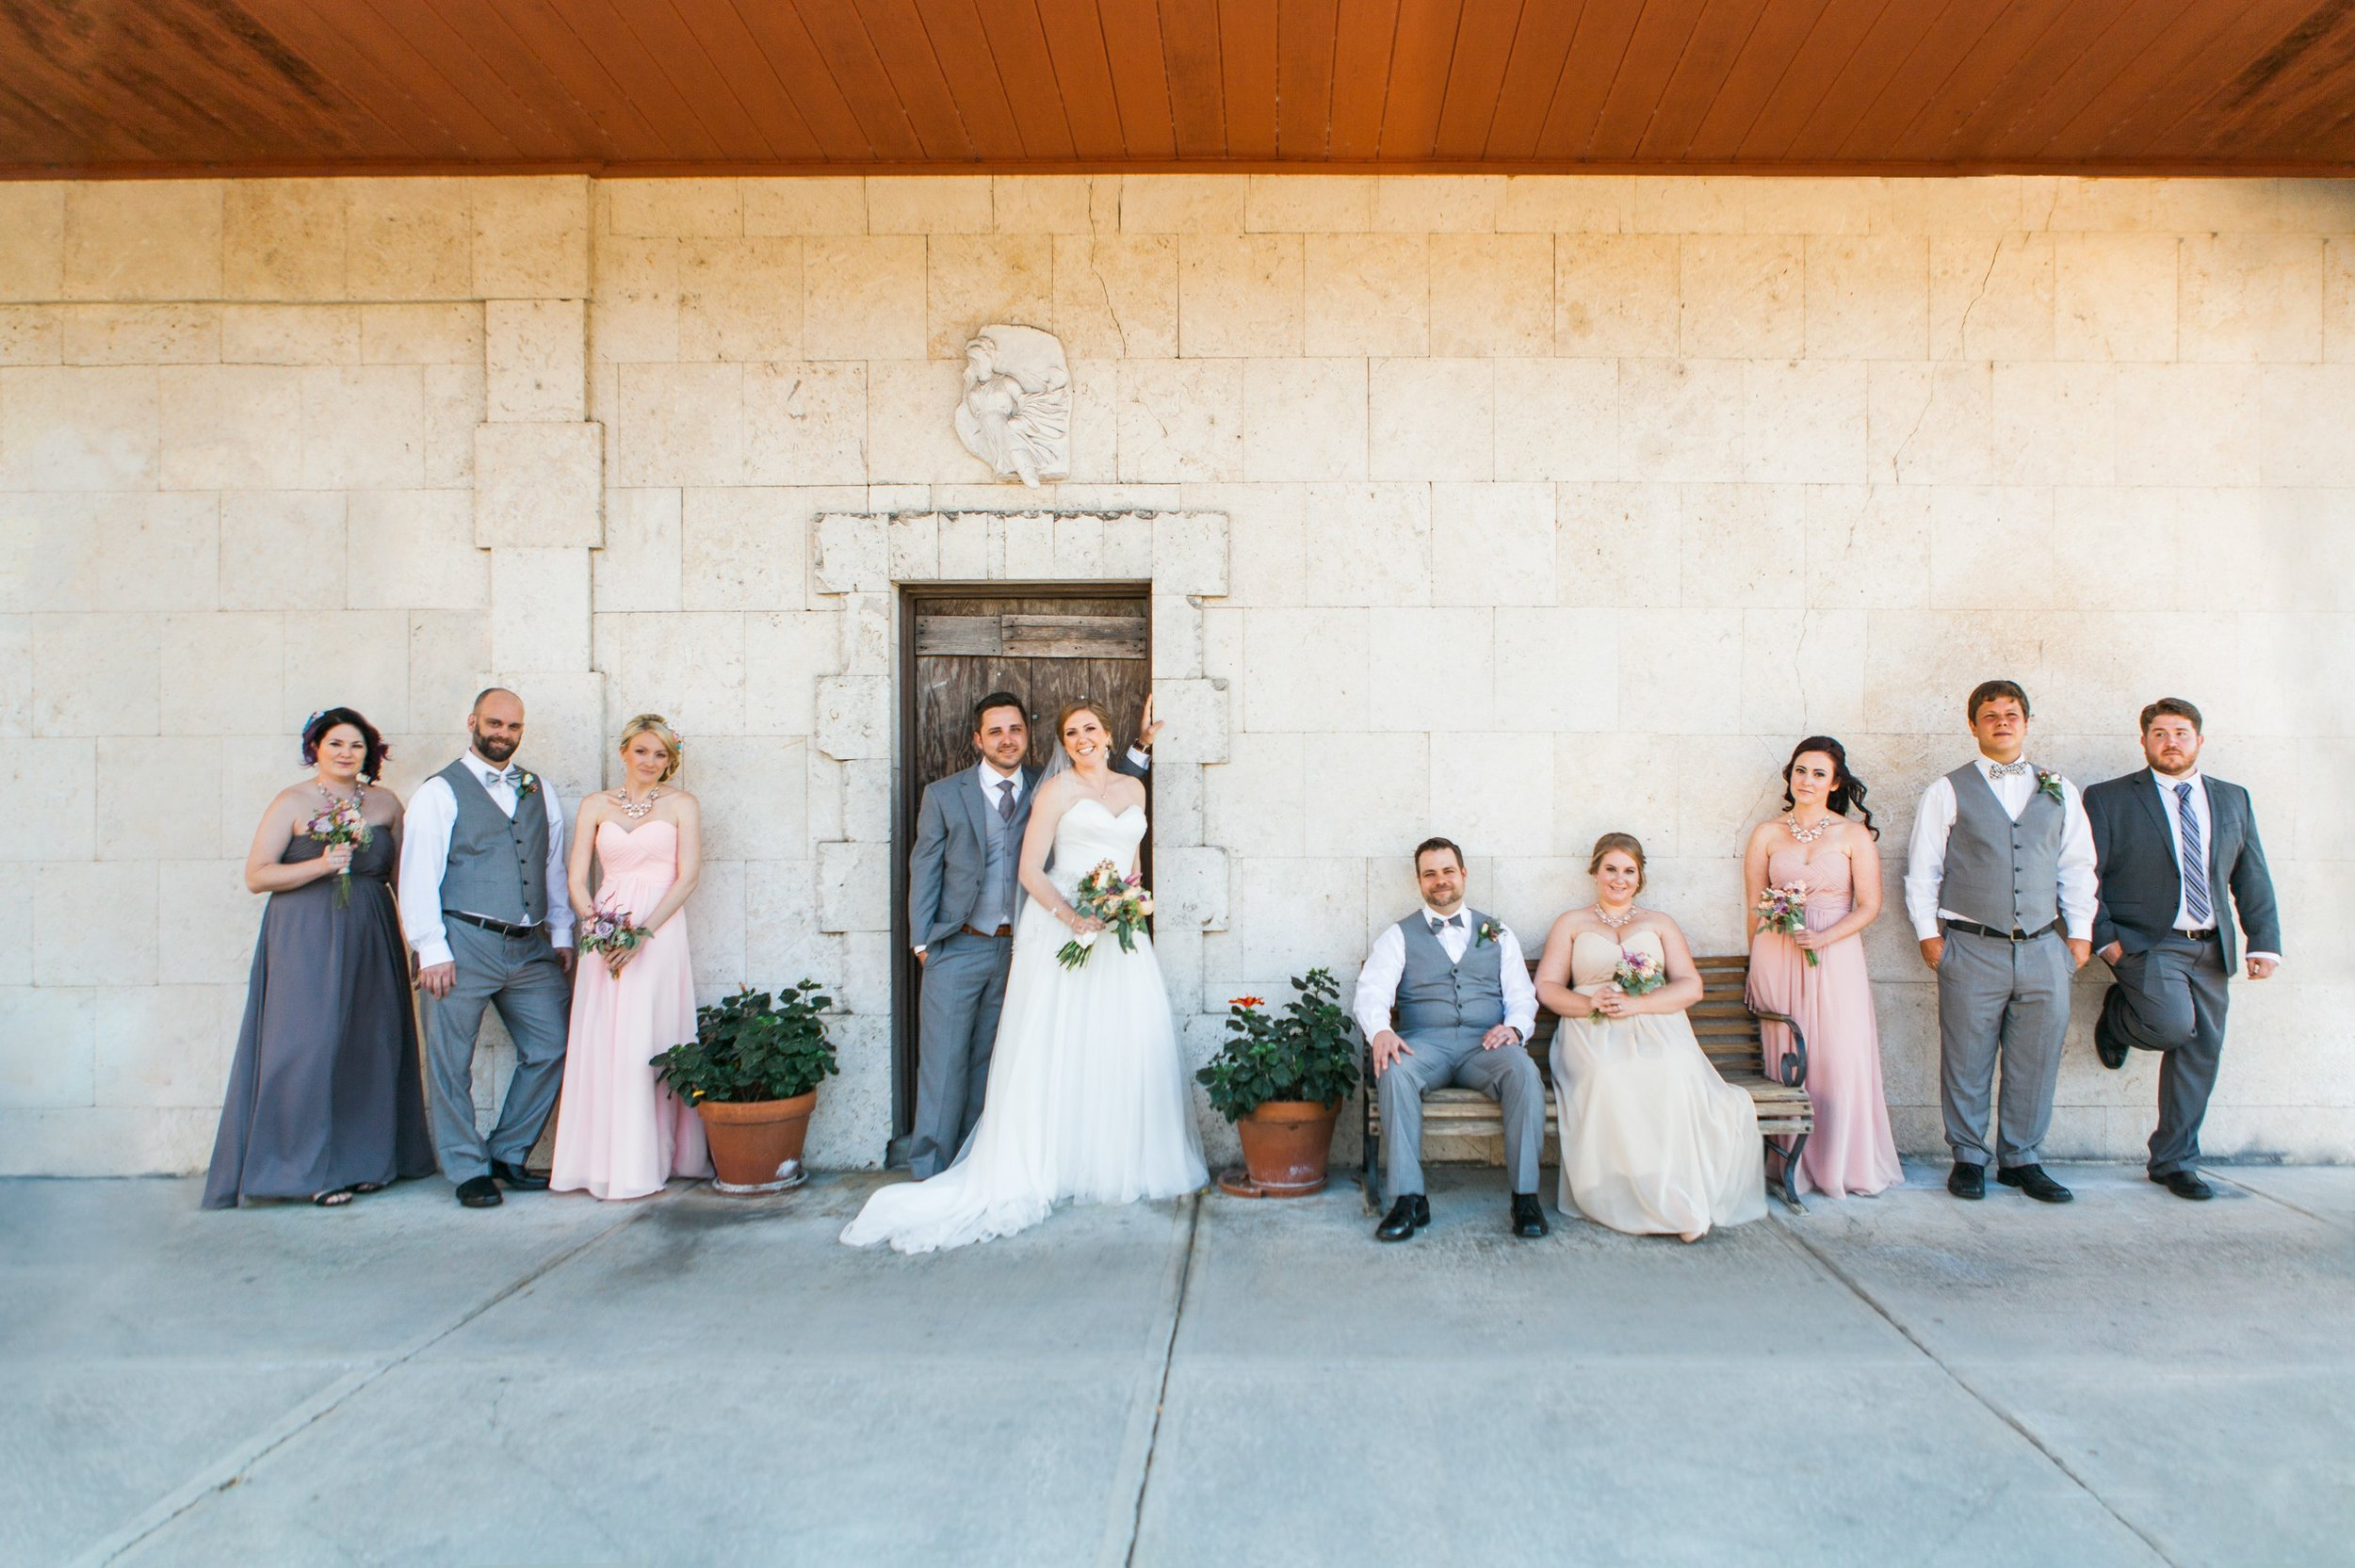 Epic bridal party group photos of groomsmen and bridesmaids in blush lavender gowns in Winter Park Farmers Market Wedding